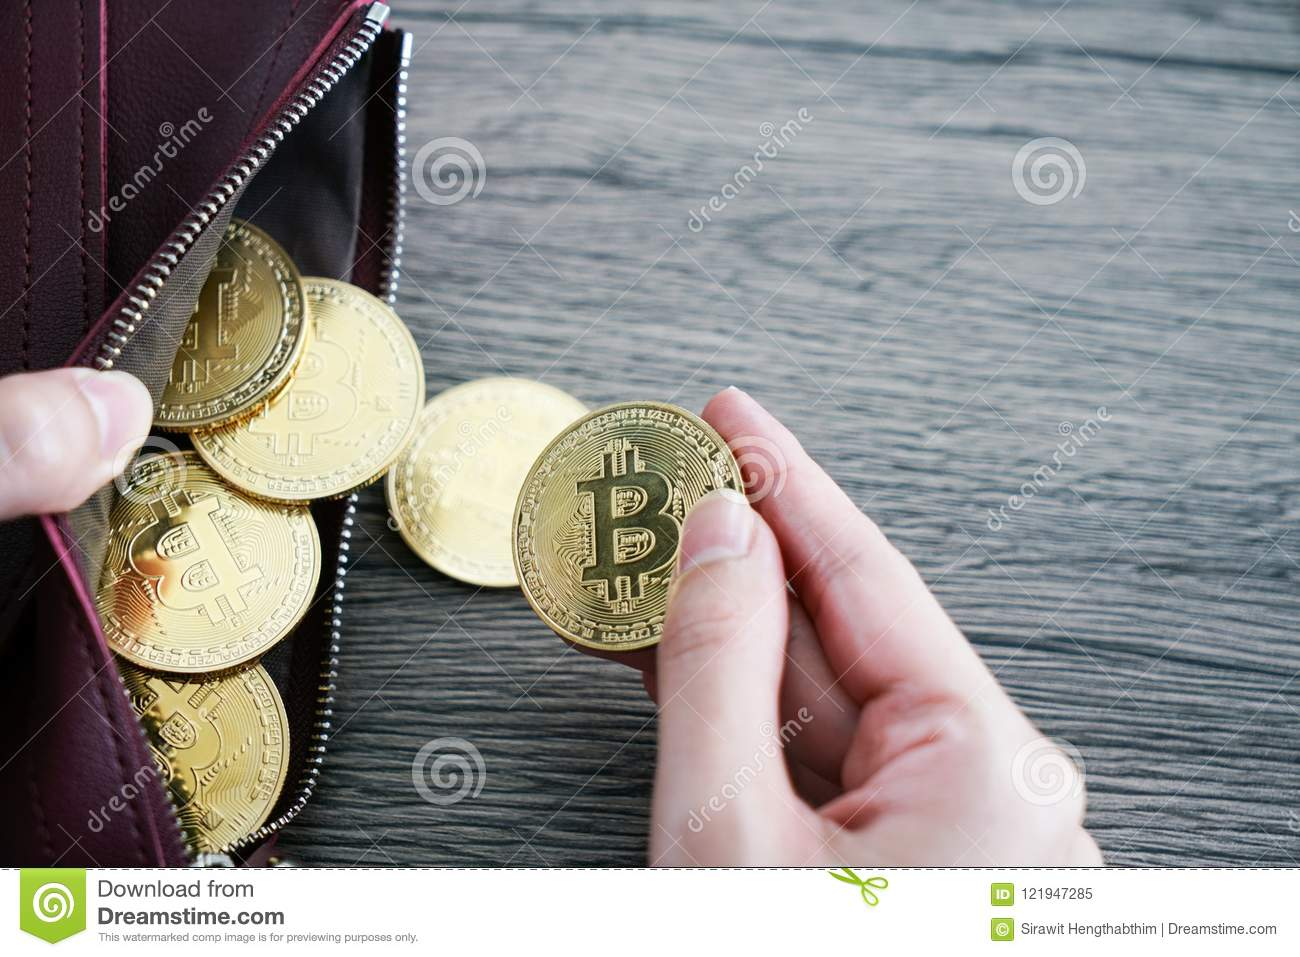 Walletbit bitcoins for sale bet on your baby judy ann santos audition for the voice